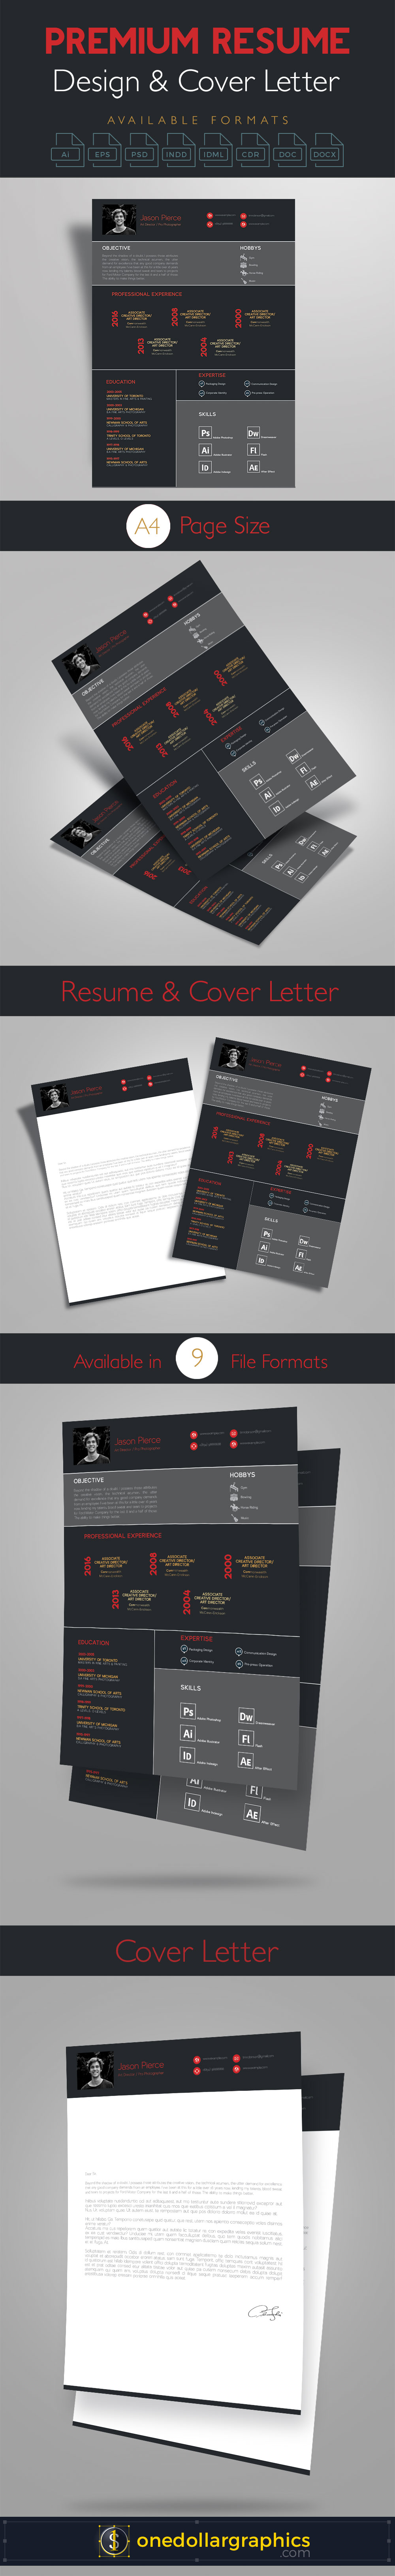 cover letter for sales job%0A Creative Infographic Resume Template With Cover Letter   Design   Pinterest    Infographic resume  Infographic and Template